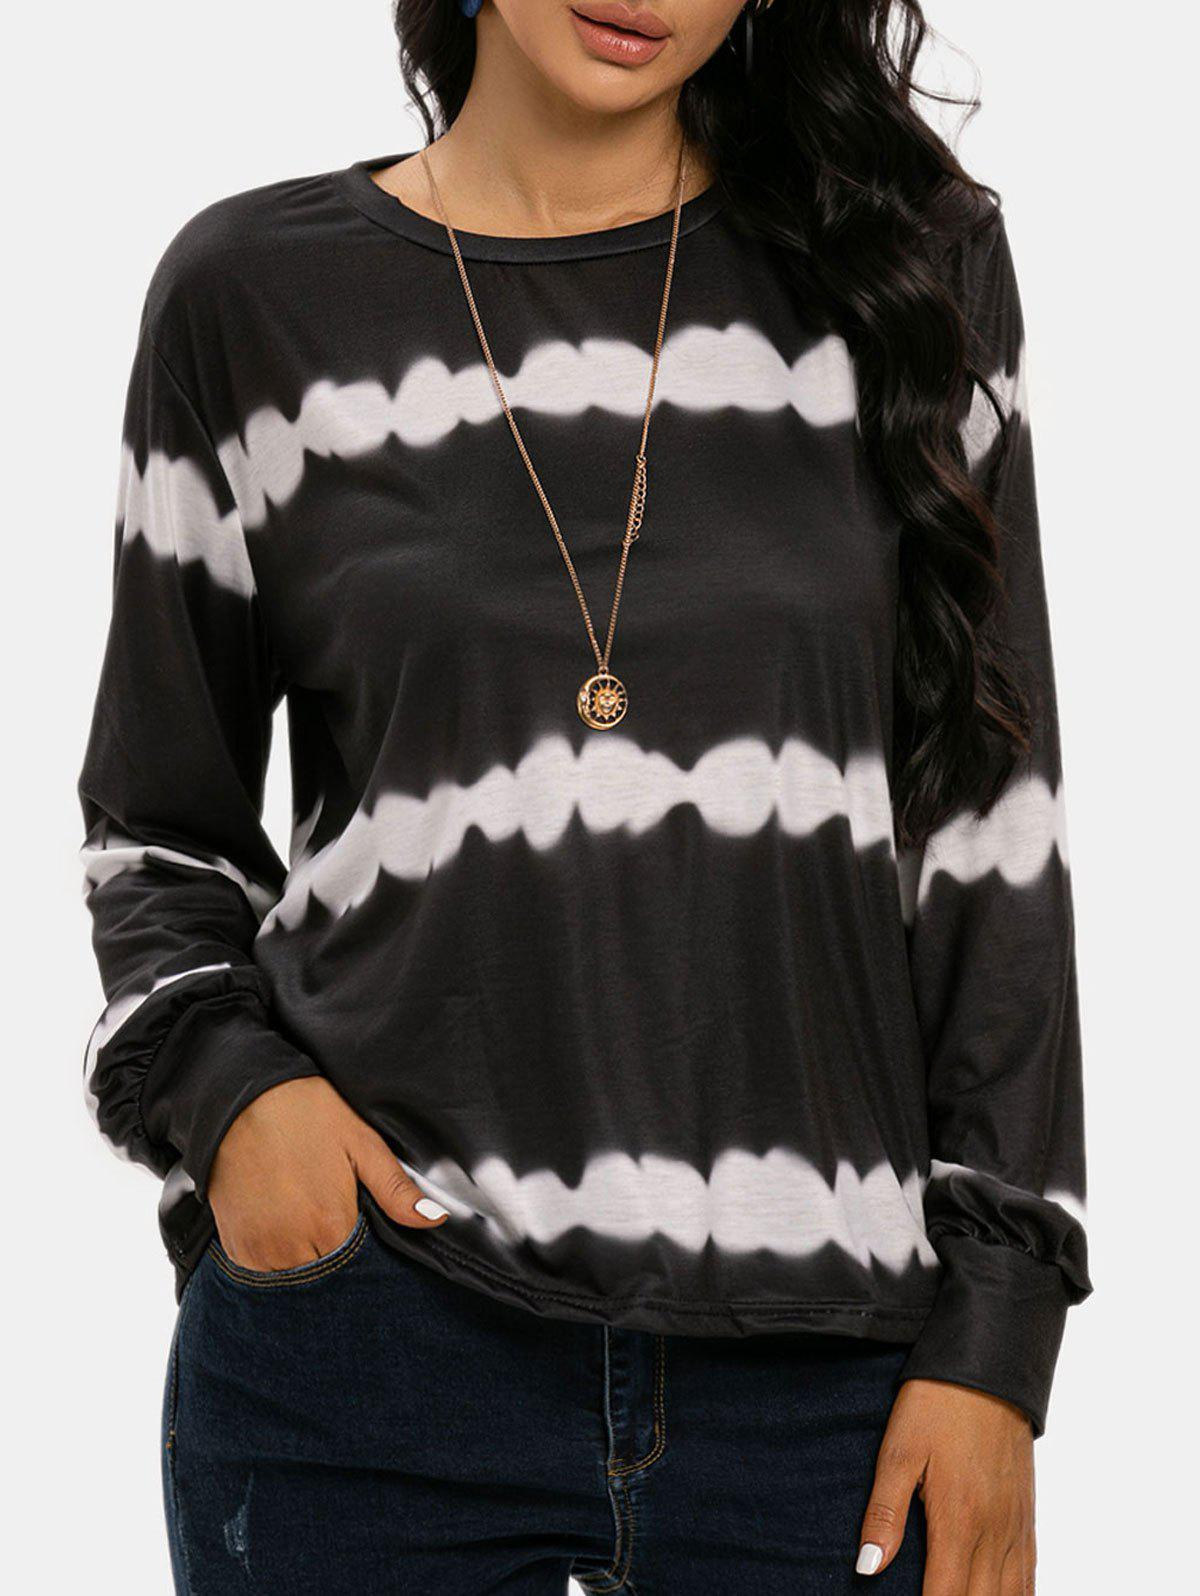 Discount Streak Dye Long Sleeve Top